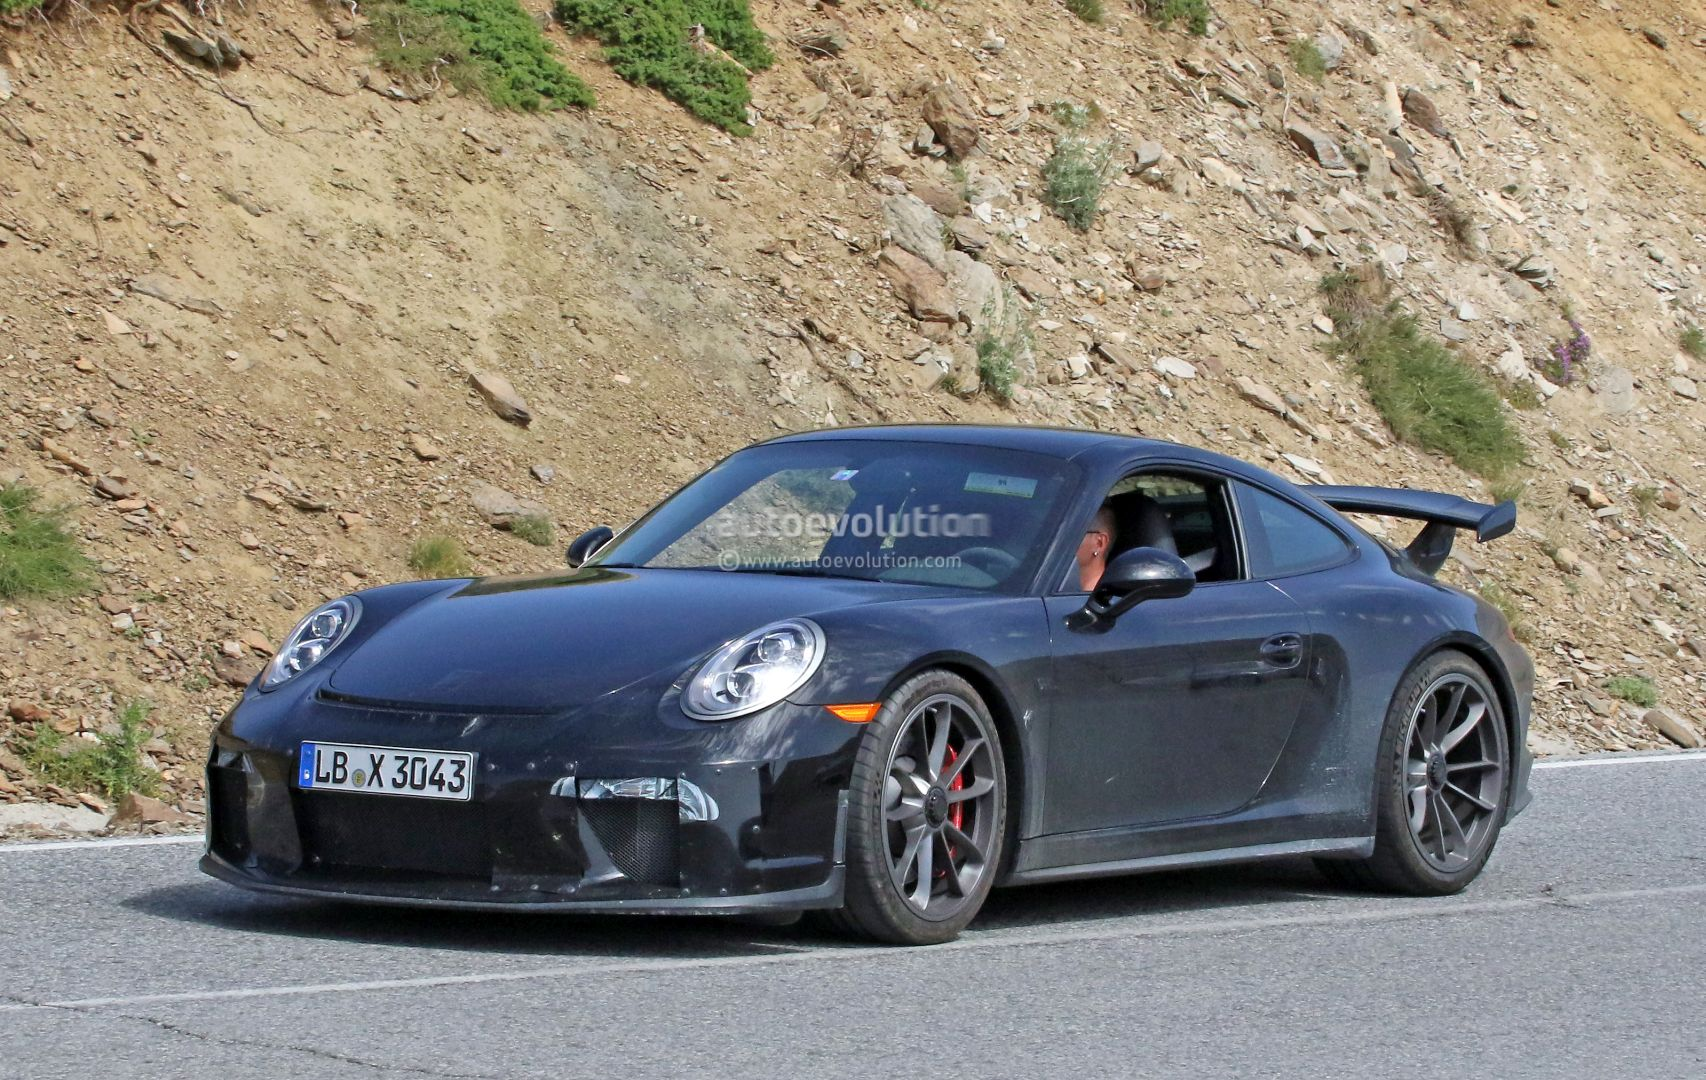 Manual Gearbox 2017 Porsche 911 GT3 (991 2) Spied with Hilarious